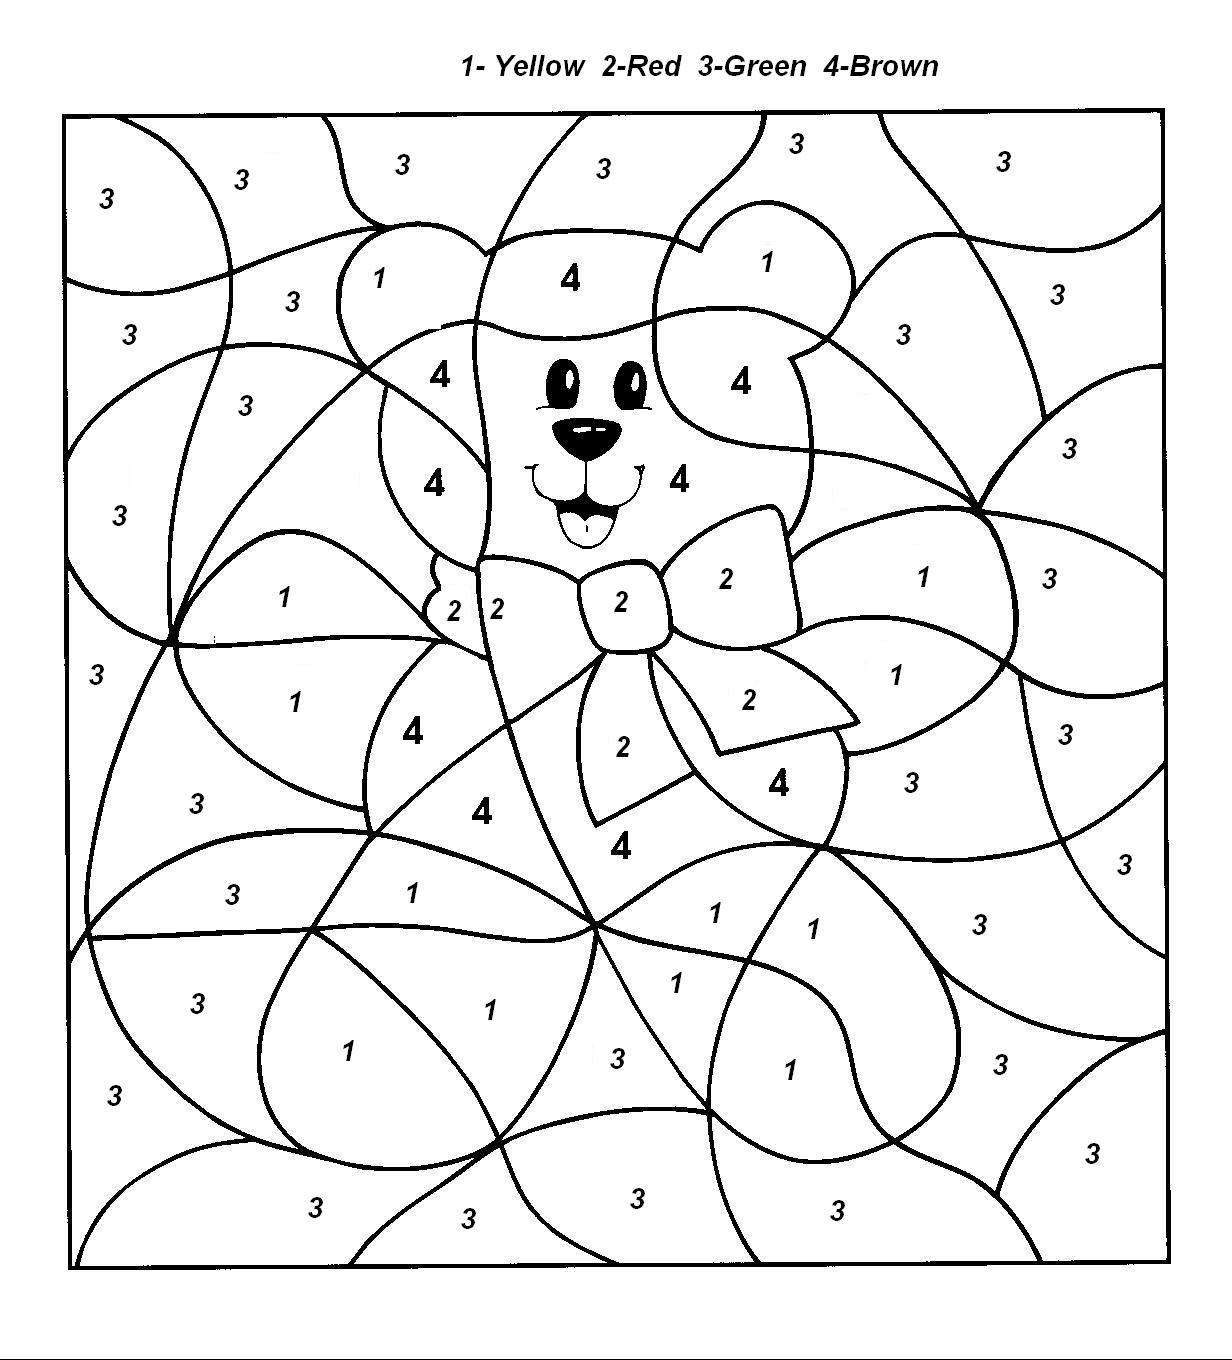 coloring numbers color by number to learning color by number activities coloring numbers